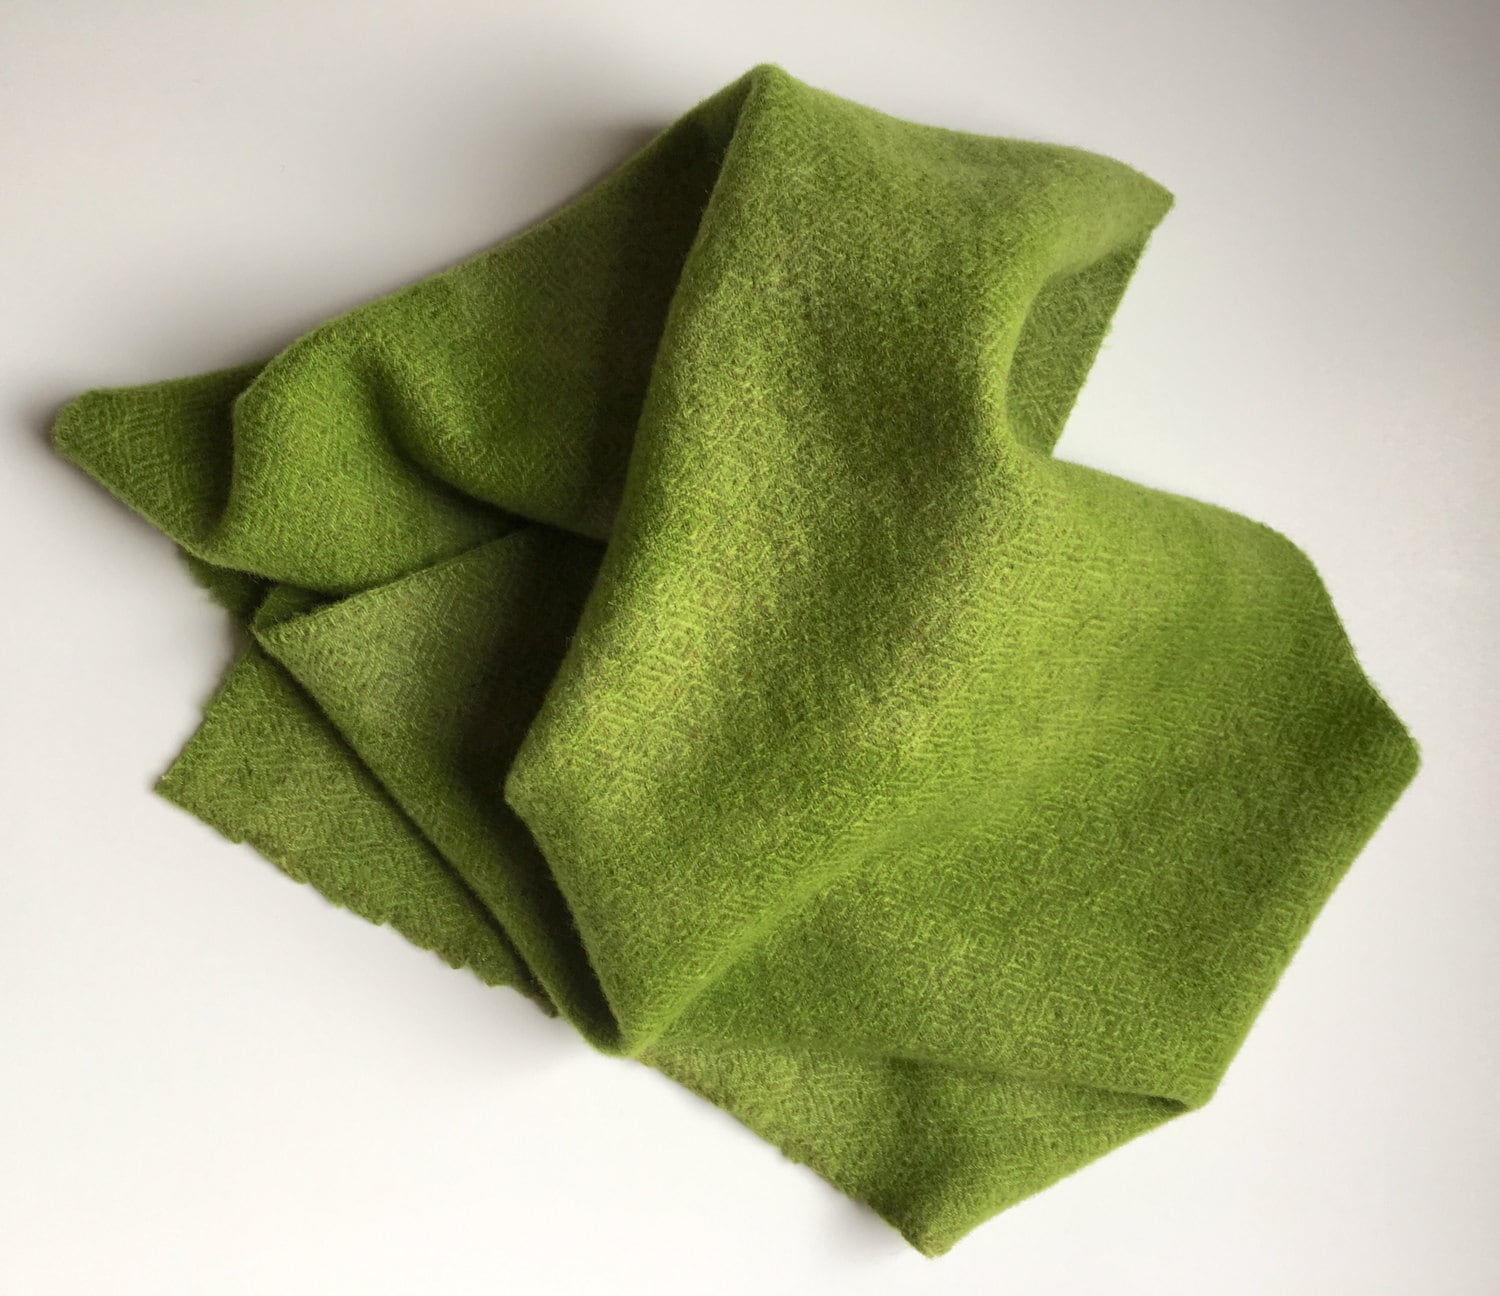 Spring Green Tic Toc, Hand Dyed Wool, Fat Quarter Yard, Felted Wool Fabric  for Rug Hooking, Wool Applique and Crafts